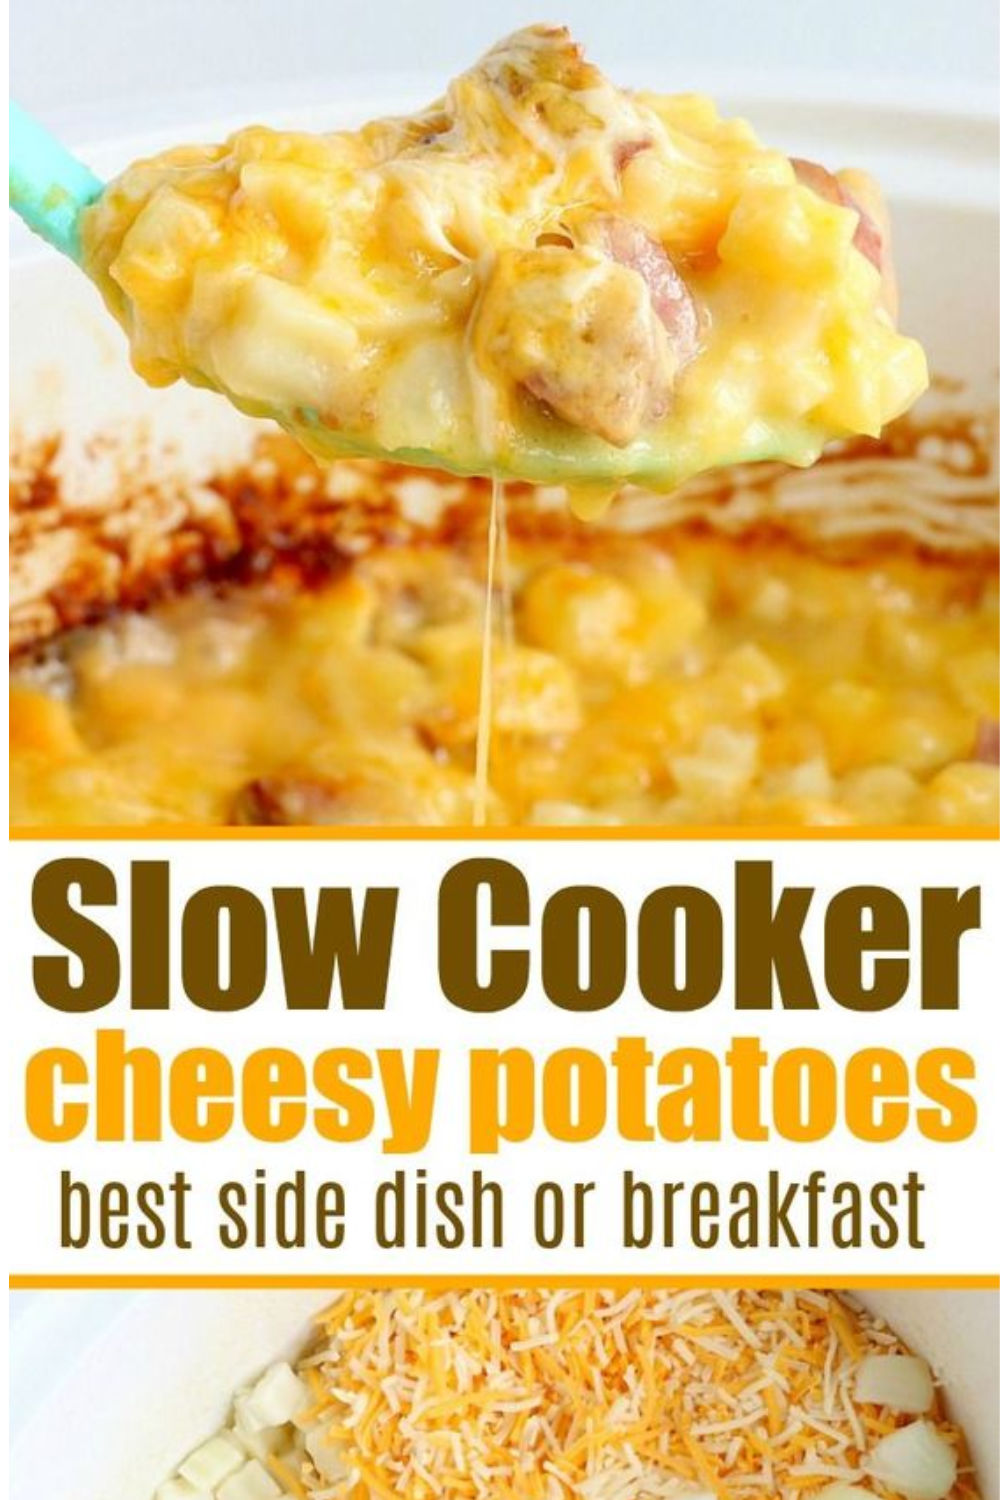 slow cooker cheesey potatoes